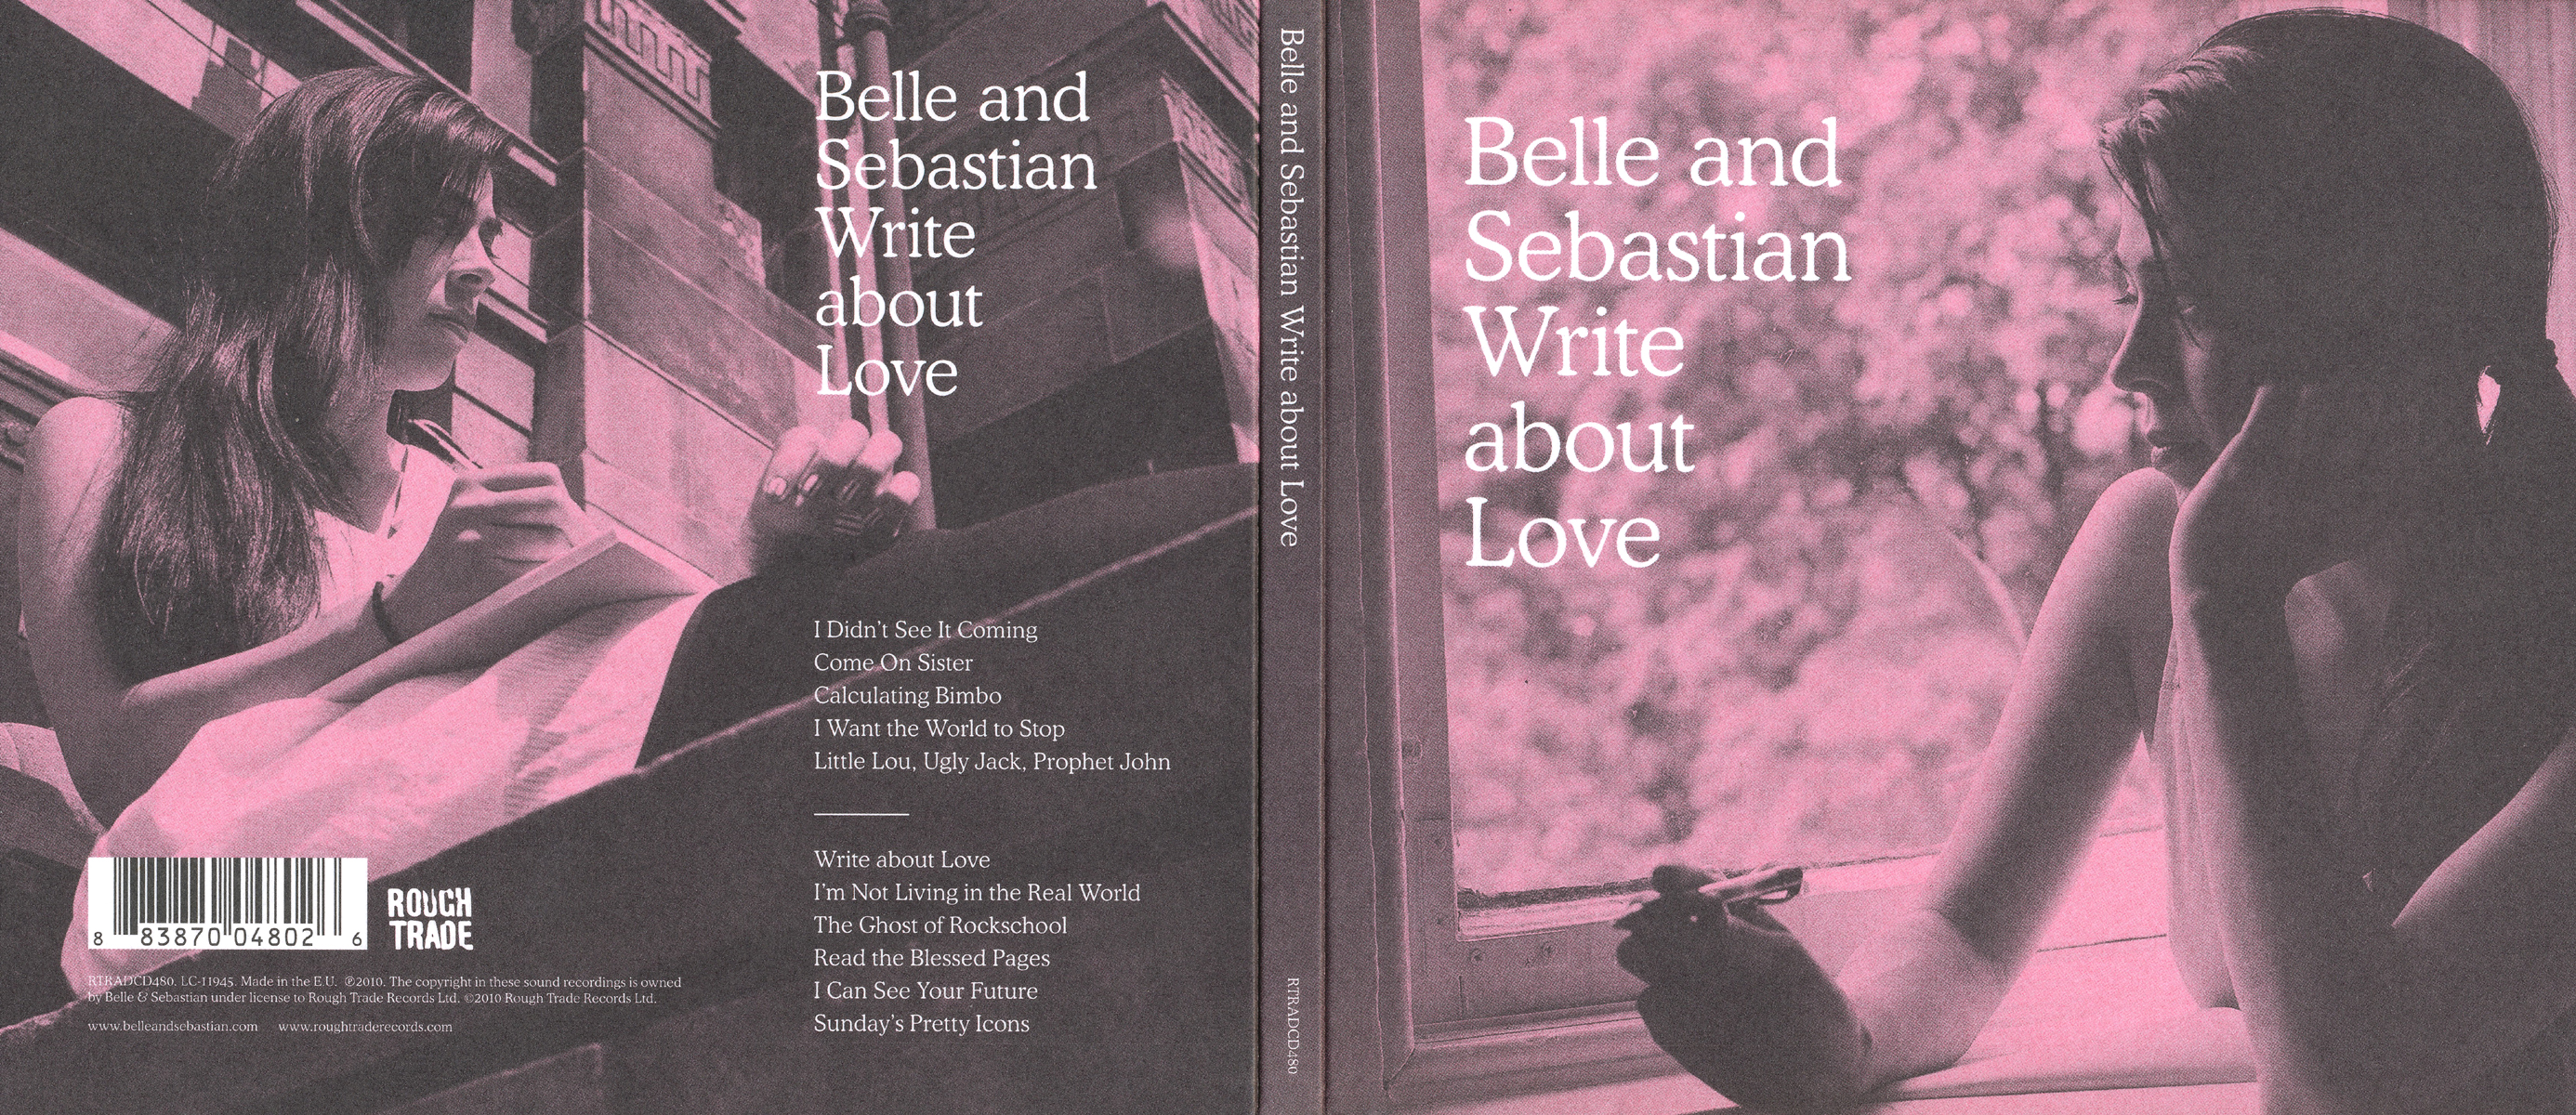 belle and sebastian write about love album song